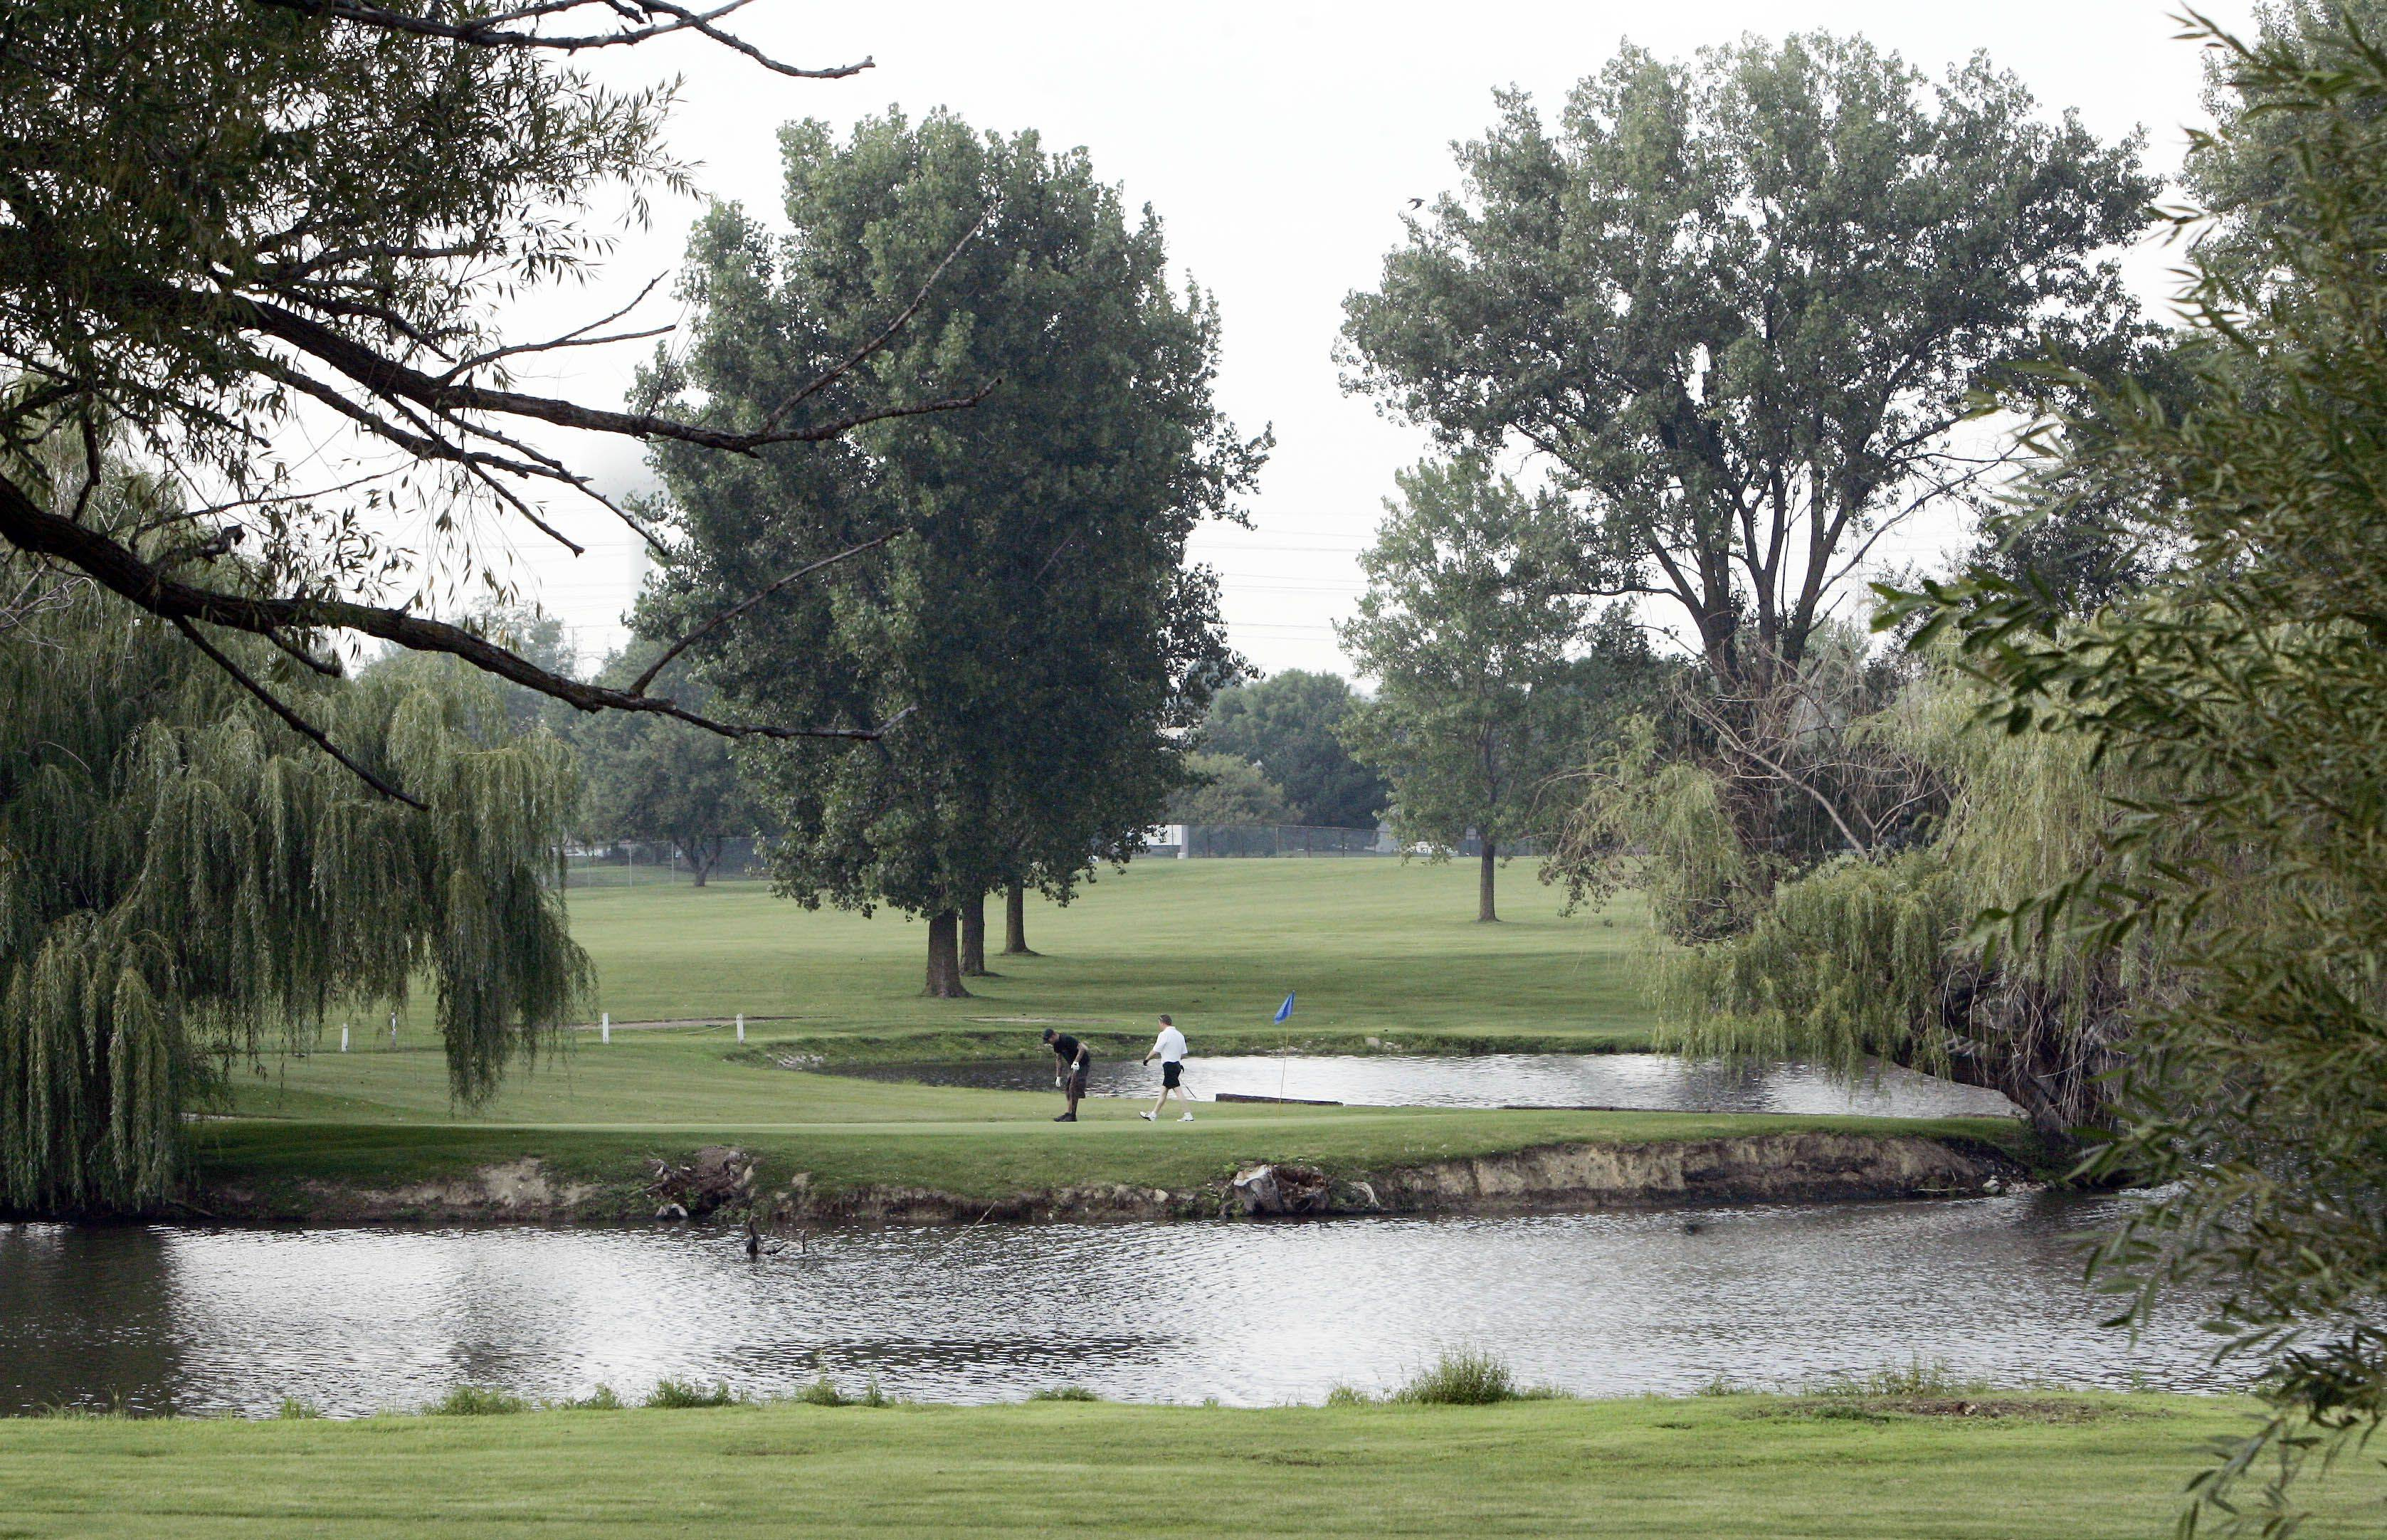 DuPage County Forest Preserve commissioners must decide if it's worth continuing the district's 12-year legal fight to forcibly acquire Country Lakes Country Club in northwest Naperville.